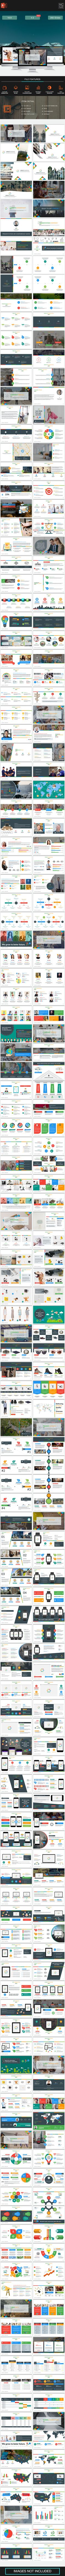 Loroati PowerPoint Template  #ui design #woocomerce • Click here to download ! http://graphicriver.net/item/loroati-powerpoint-template/15939674?ref=pxcr